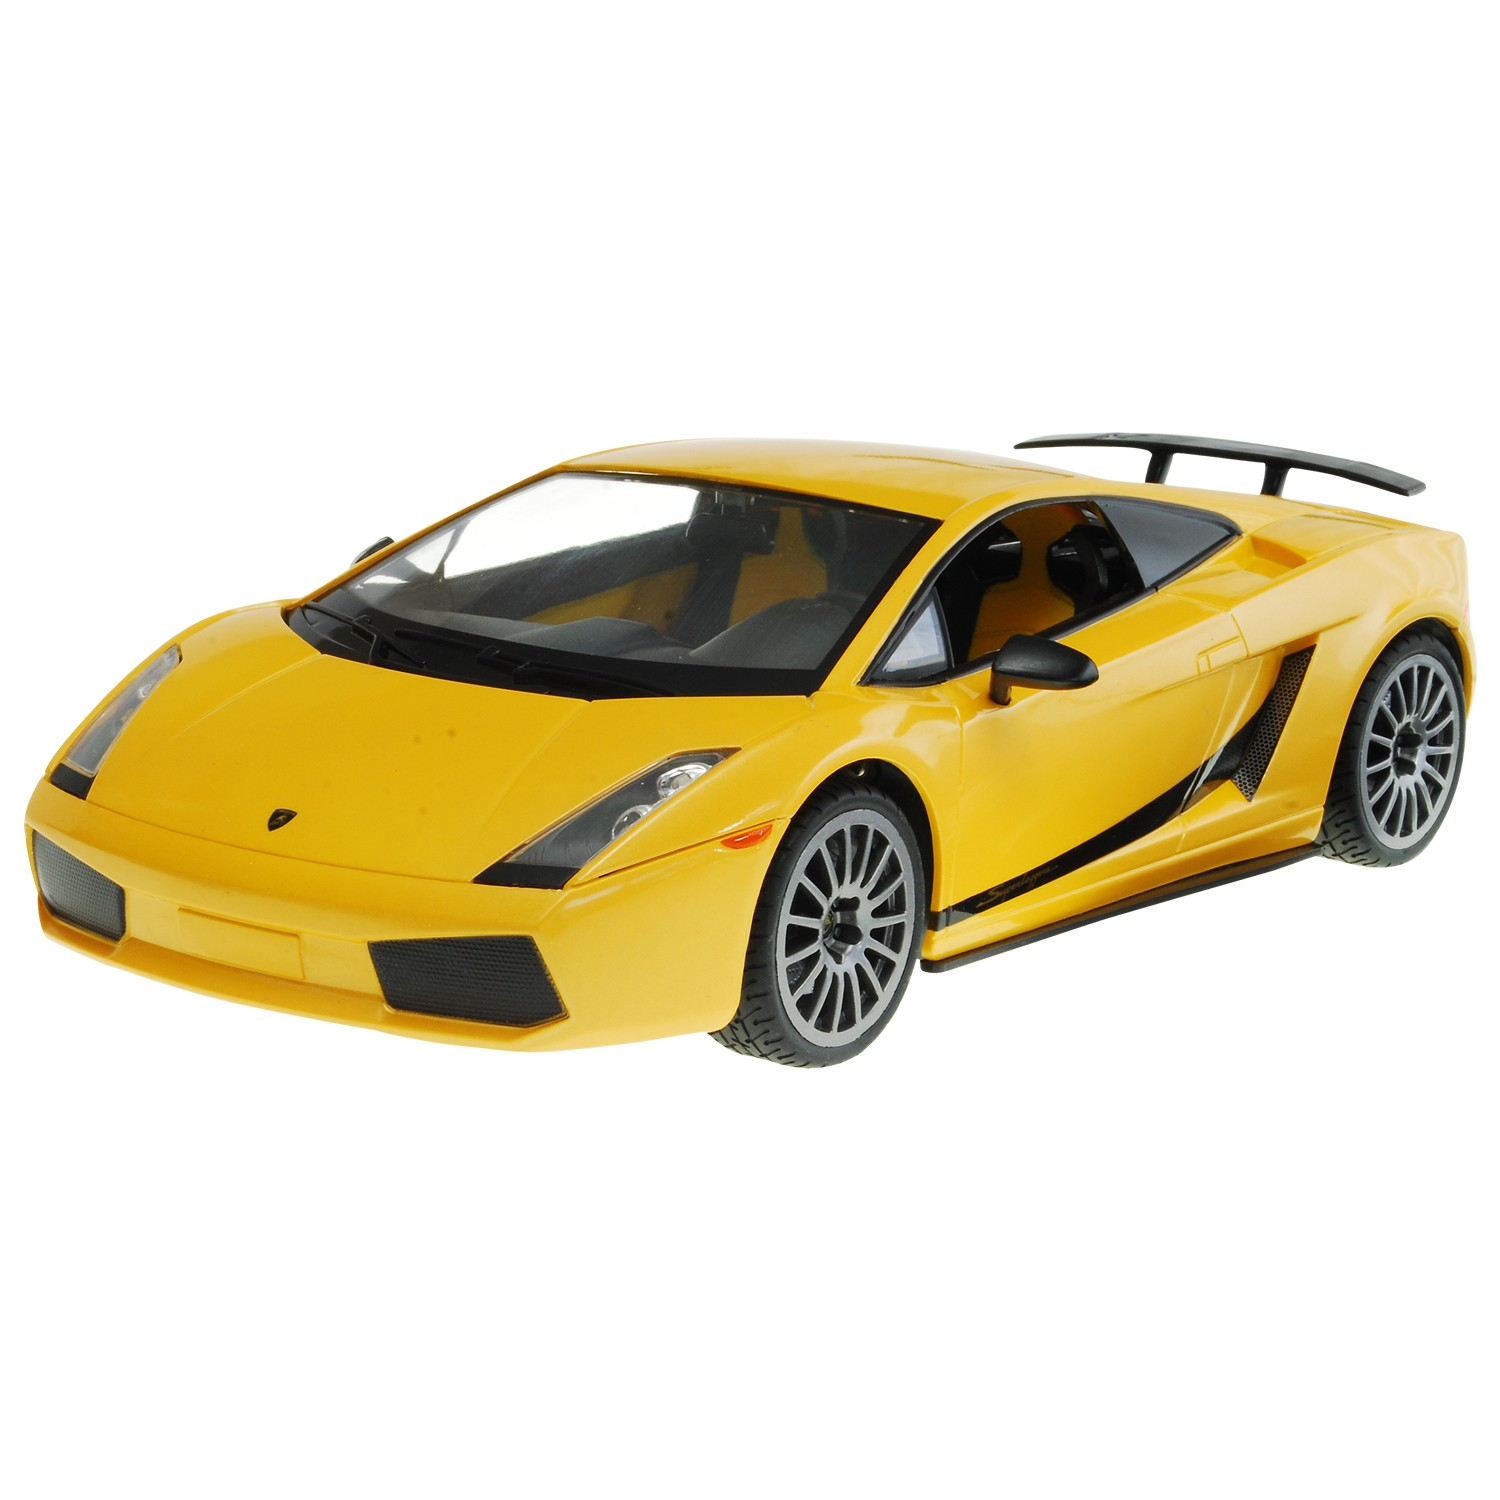 best electric rc cars with Rc Car Wallpapers on 3926 as well Traxxas Rustler Xl5 110 2wd Stadium Truck 37054 P 5516 moreover Rc Remote Control Ebay as well 27586 Dinka Jester also Ride On 12 Volt.